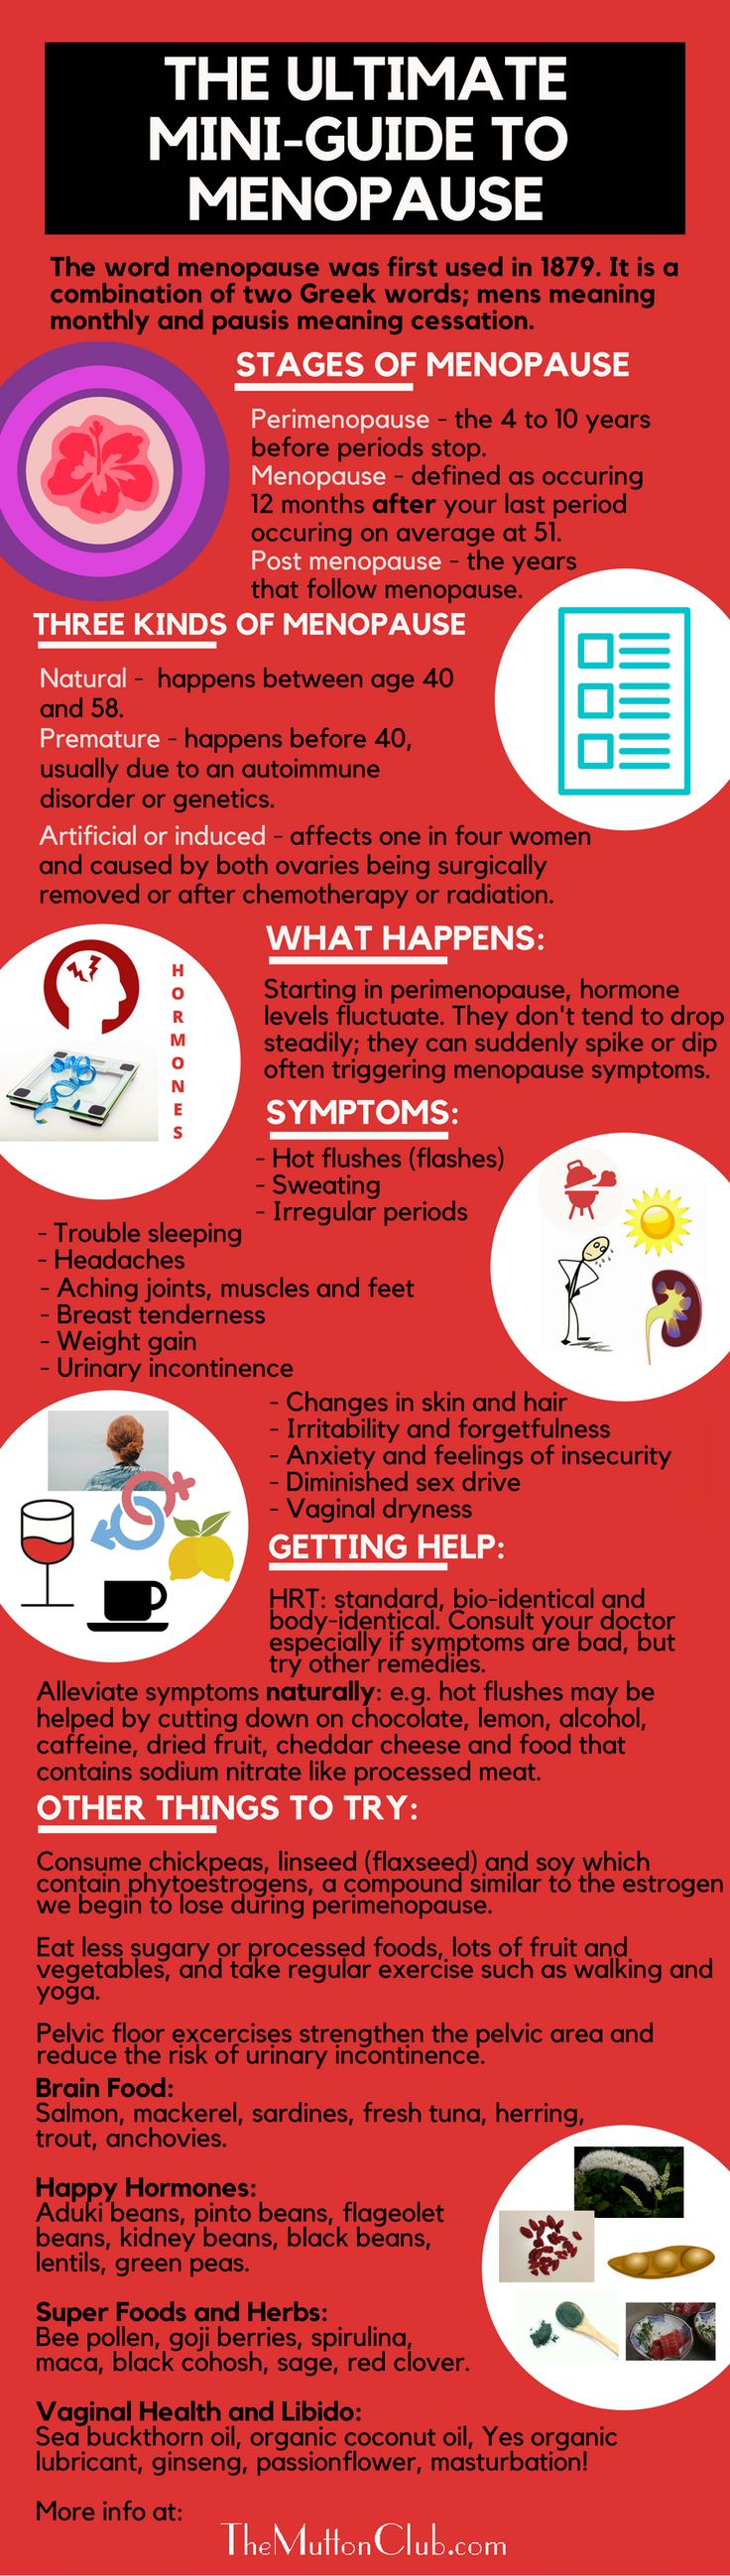 Our all-you-need-to-know guide to menopause in one handy infographic. What it is, common symptoms and how you can help yourself thrive through it. Check out all our other perimenopause and menopause resources too covering: keeping you sexy, alcohol and hormones, HRT, how to thrive though menopause, yoga for menopause, food to help, herbal medicine etc. at https://www.themuttonclub.com/category/feeling-good/menopause/